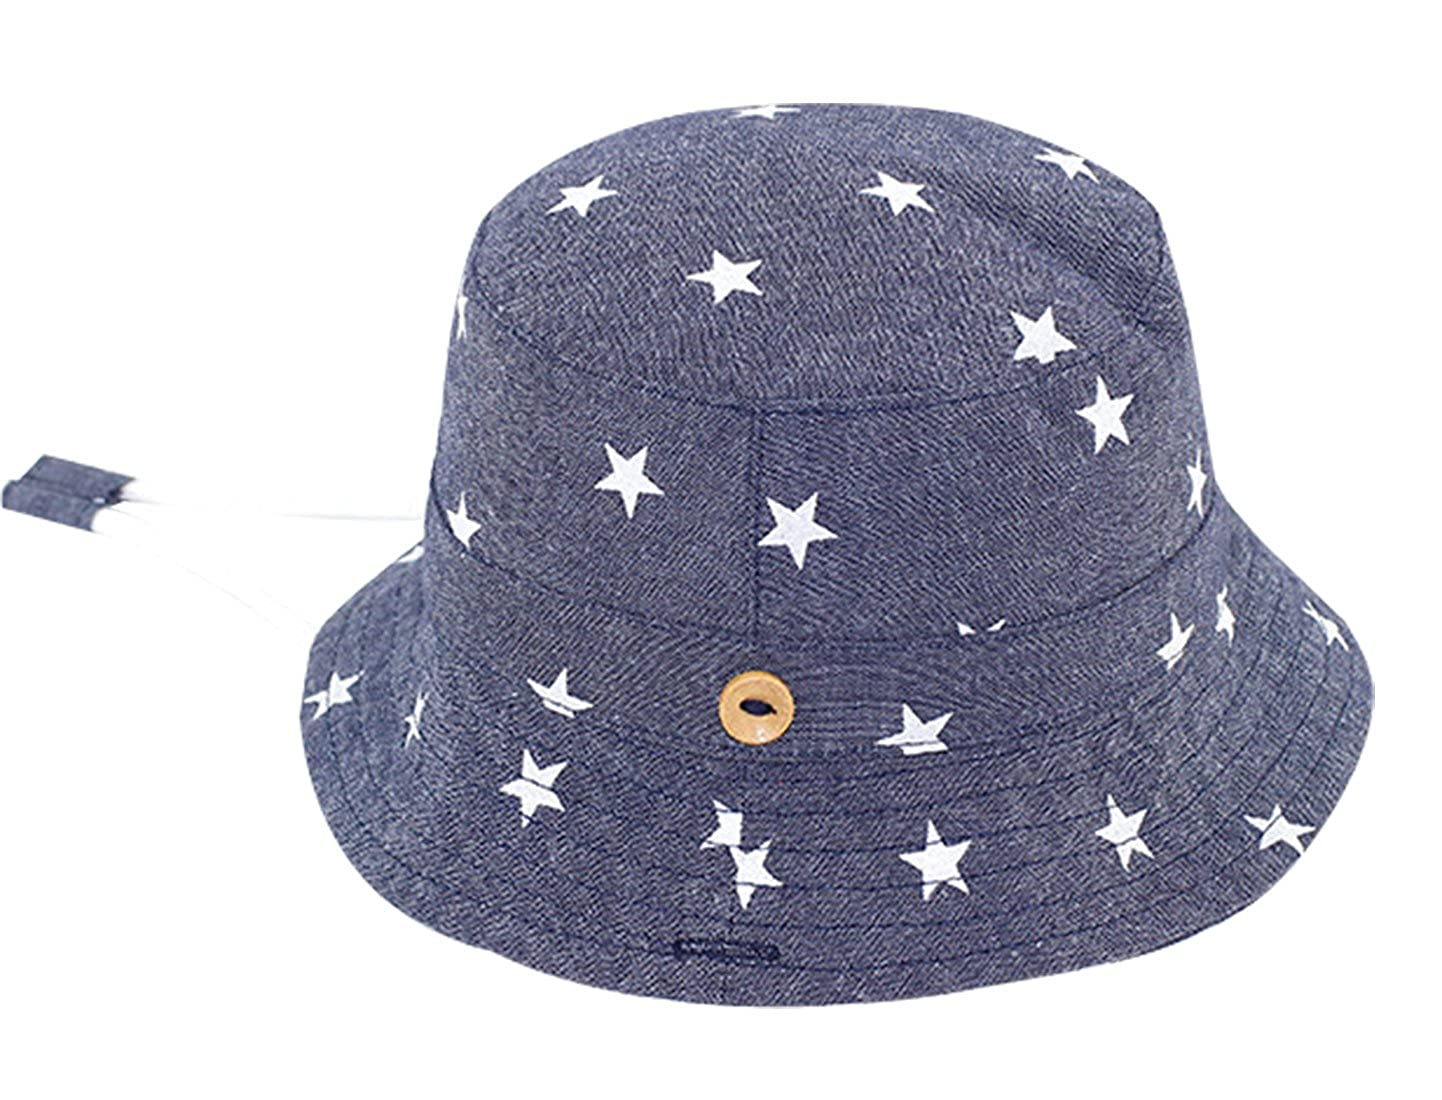 RUHI Toddler Kids Sun Protection Cap Packable Lovely Bucket Hat with Chin Strap